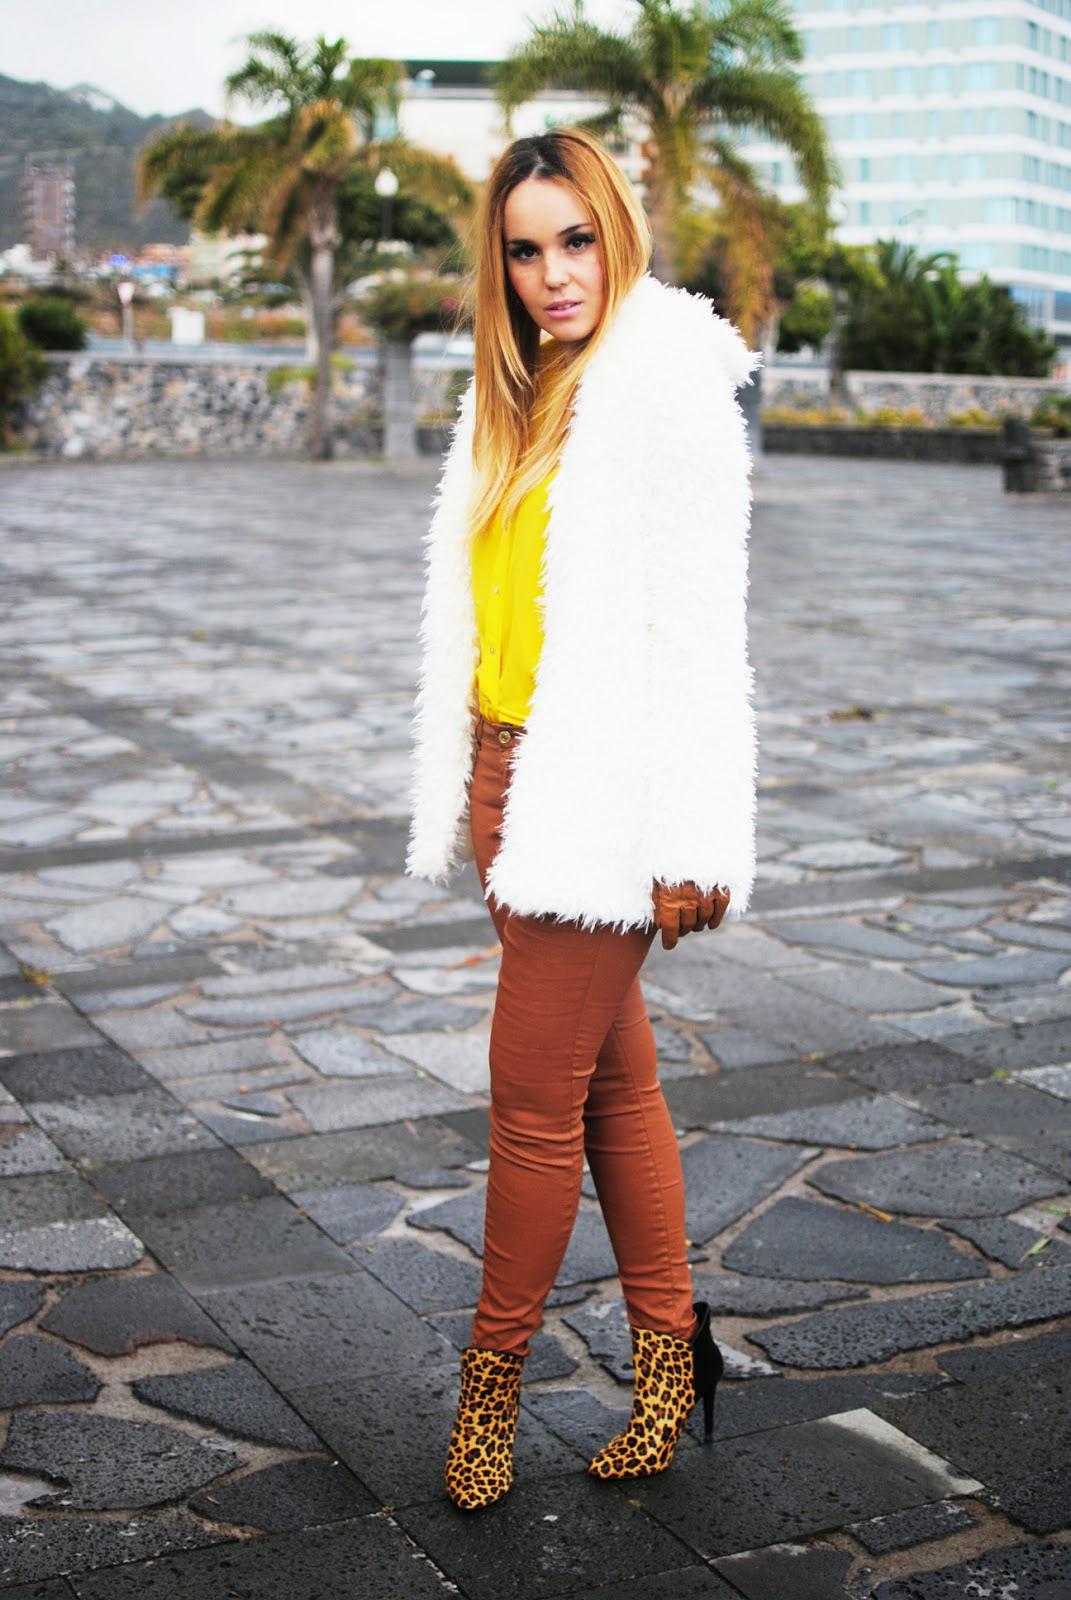 nery hdez, gloves, primark, rosewholesales, fur coat, teddy coat, canary yellow